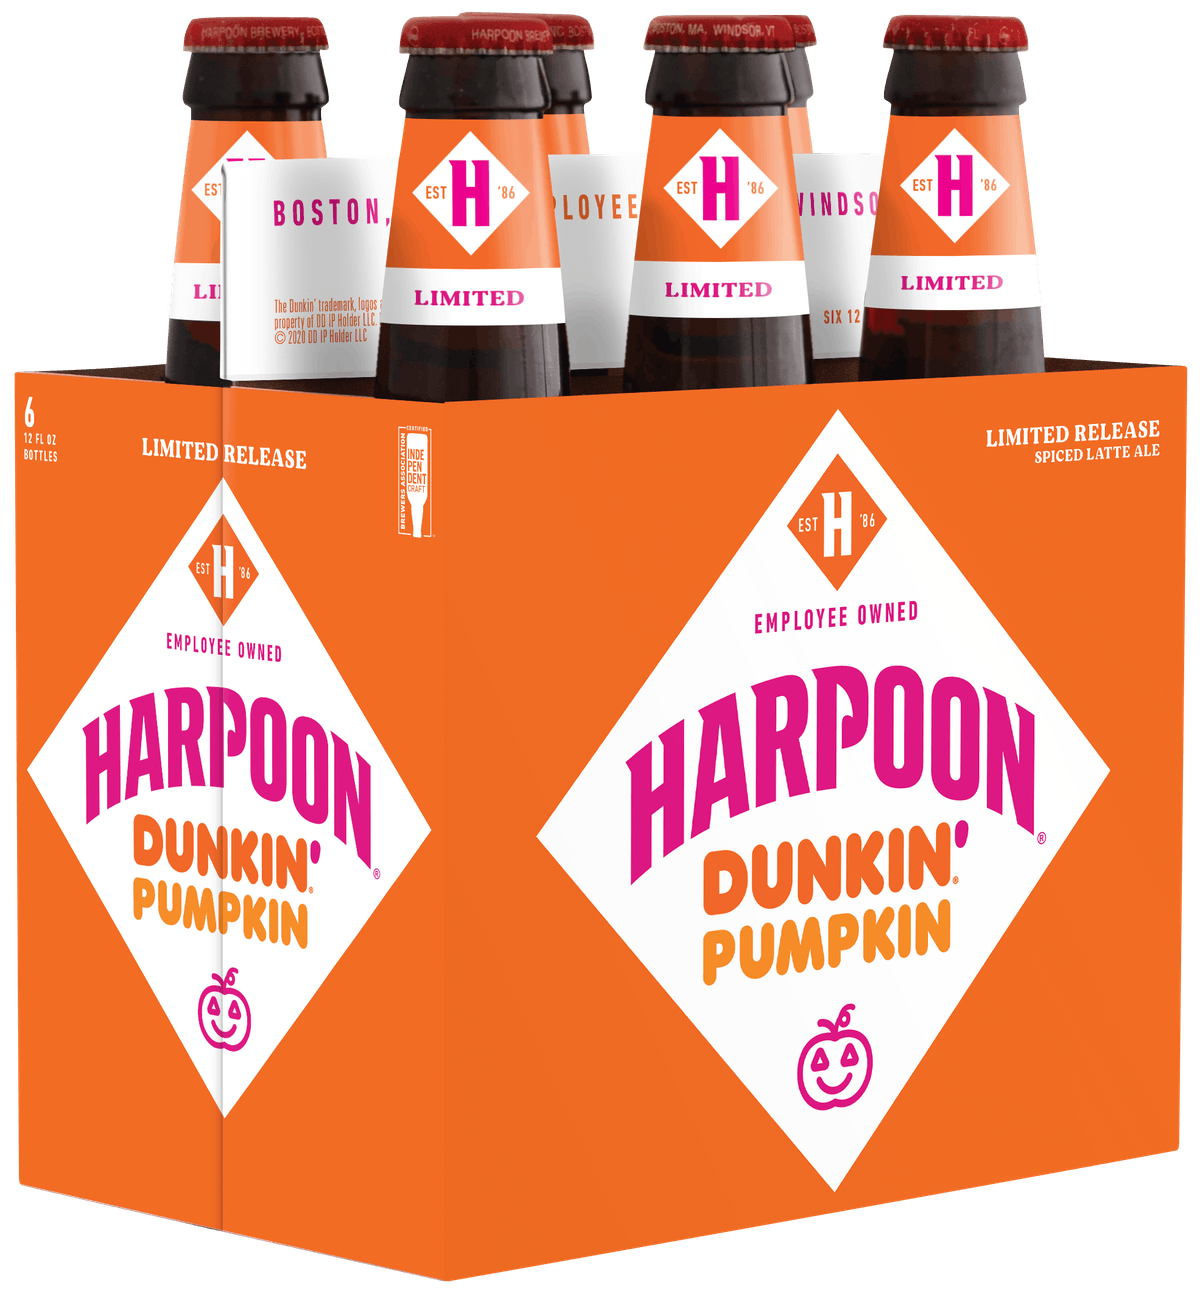 Harpoon and Dunkin's new pumpkin ale is brewed with real pumpkin.